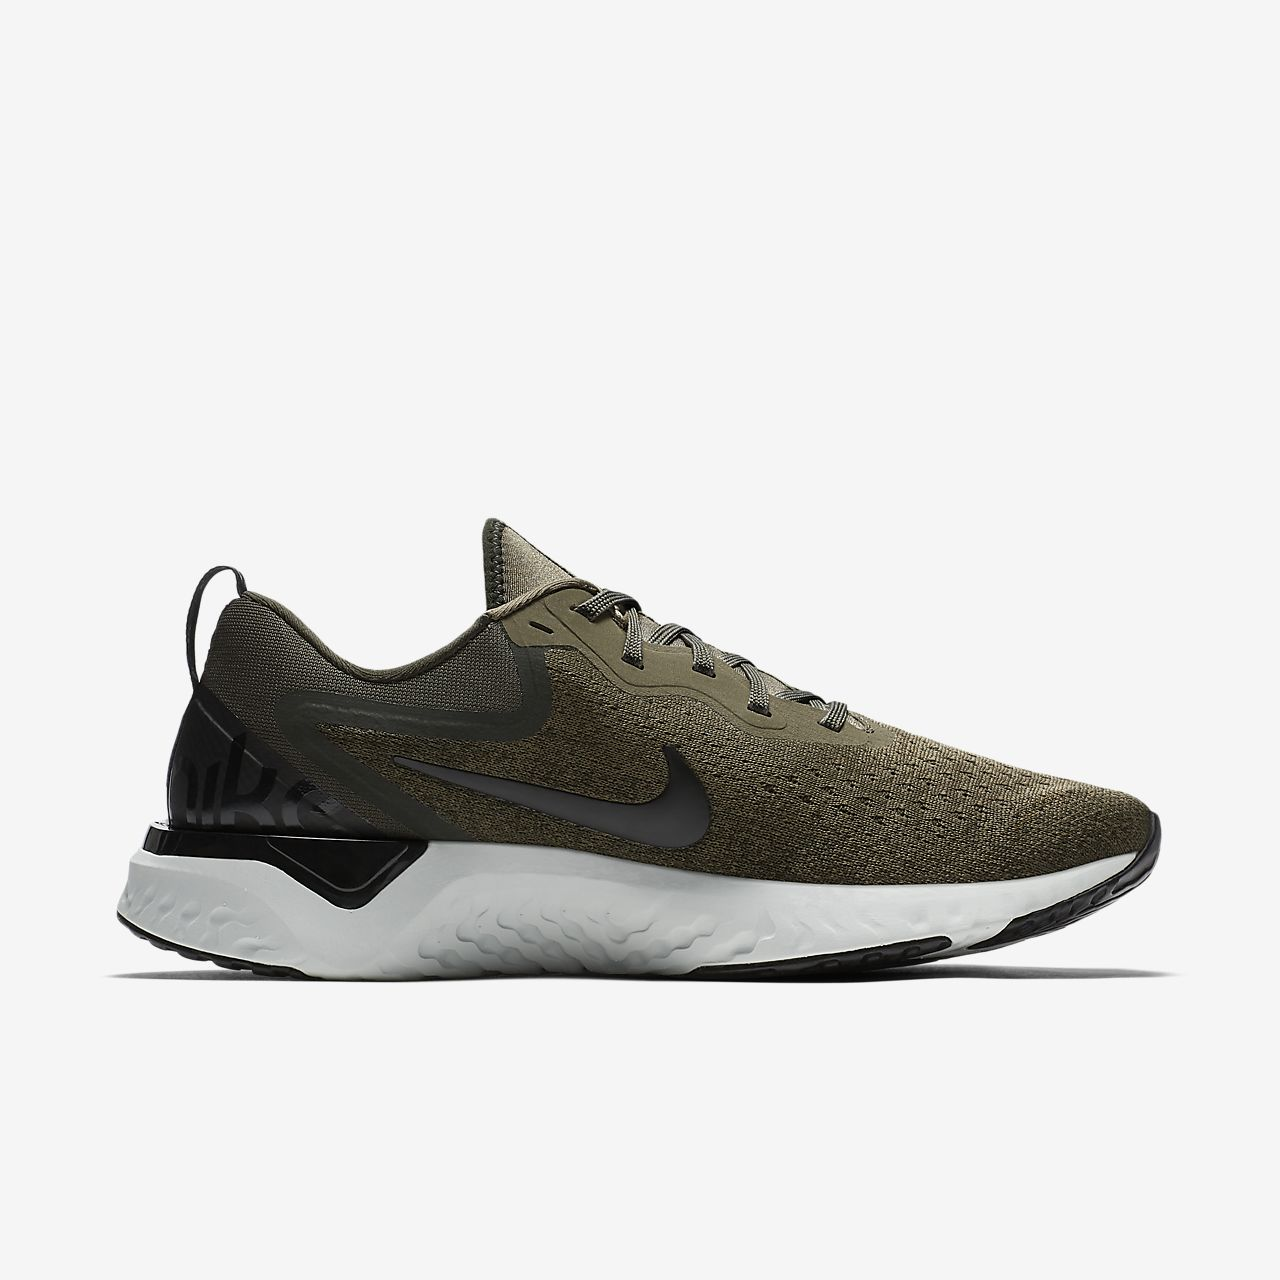 best sneakers 1b5ea 0bc6e ... coupon code for chaussure de running nike odyssey react pour homme  55d32 0d042